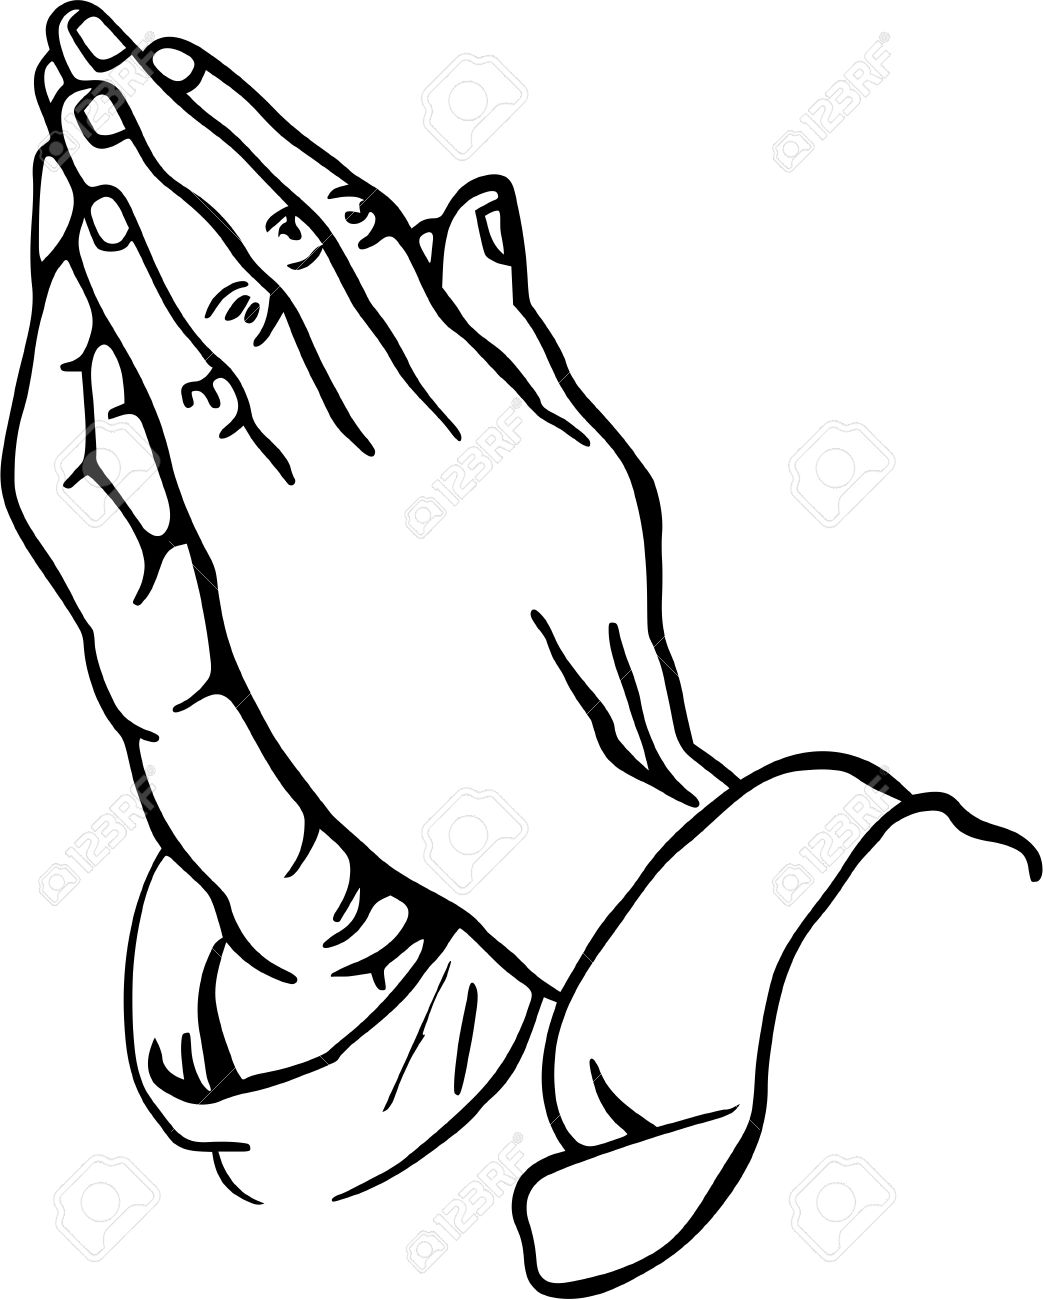 Gods clipart two hand Photo Photo Royalty Stock Clipart